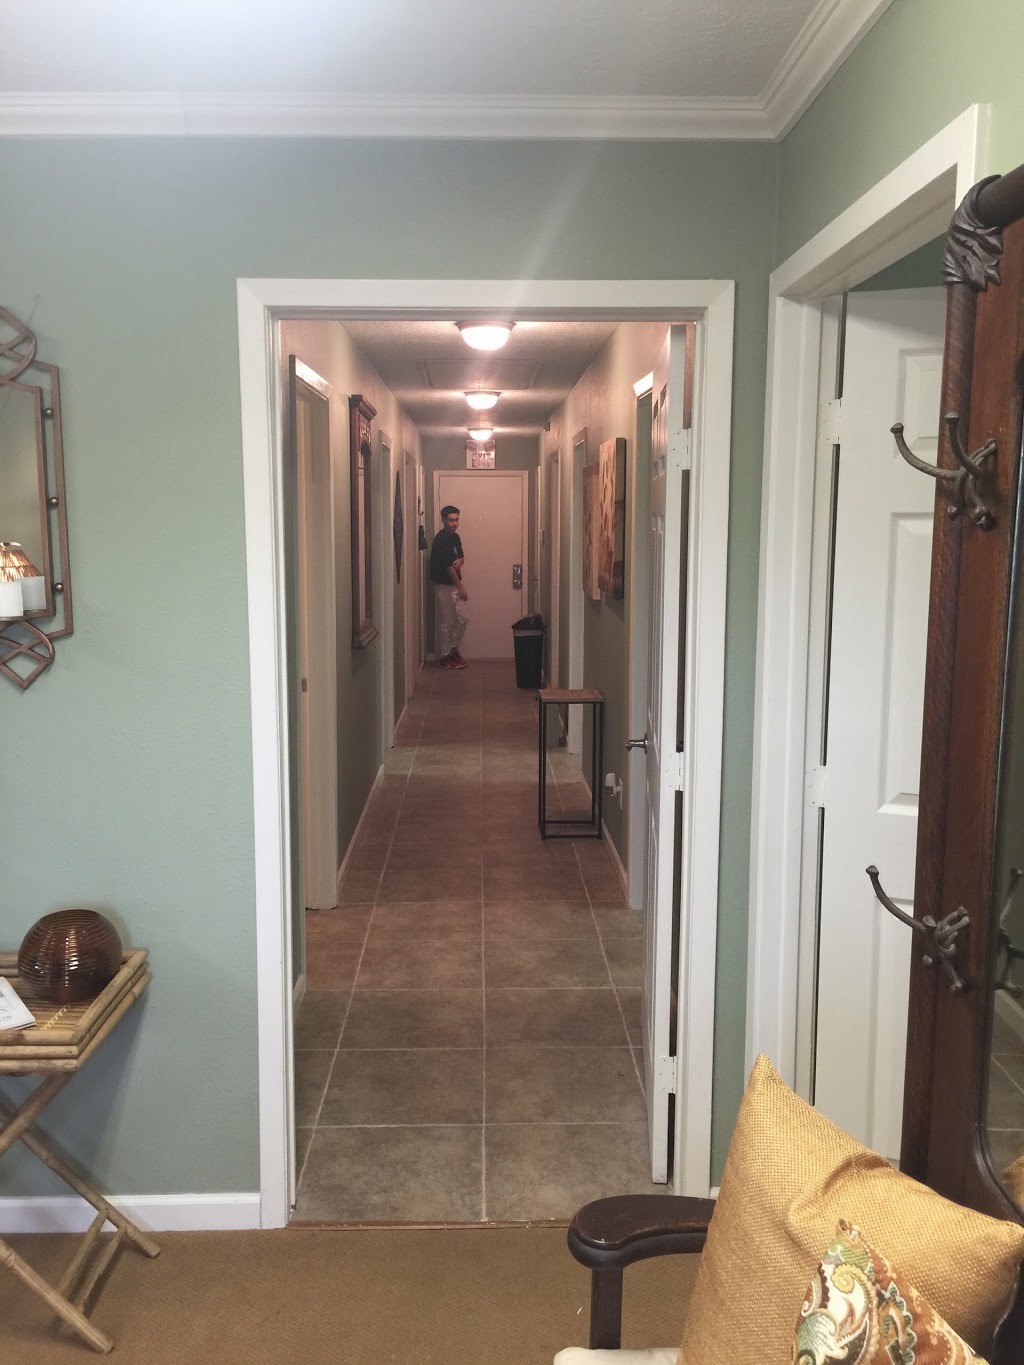 Galveston County Property Management and Sales - real estate agency    Photo 8 of 10   Address: 1501 6th St N, Texas City, TX 77590, USA   Phone: (888) 645-9994